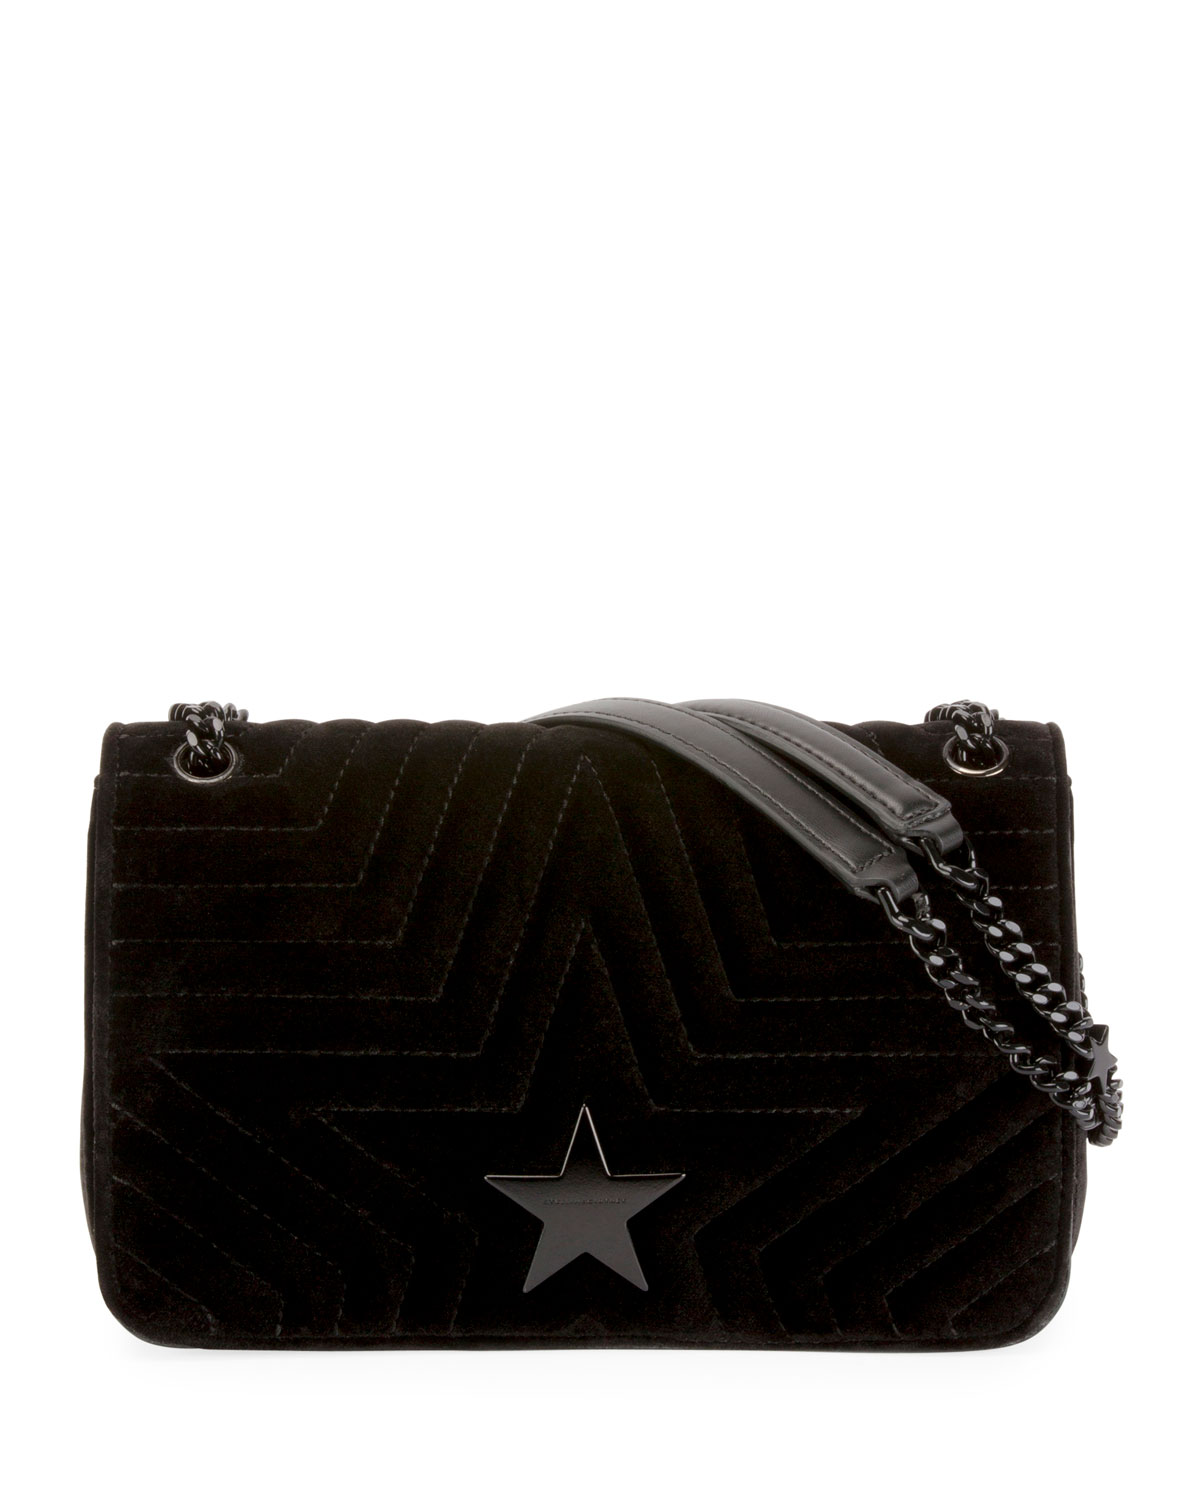 915edebdf6 Stella McCartney Stella Star Small Velvet Shoulder Bag